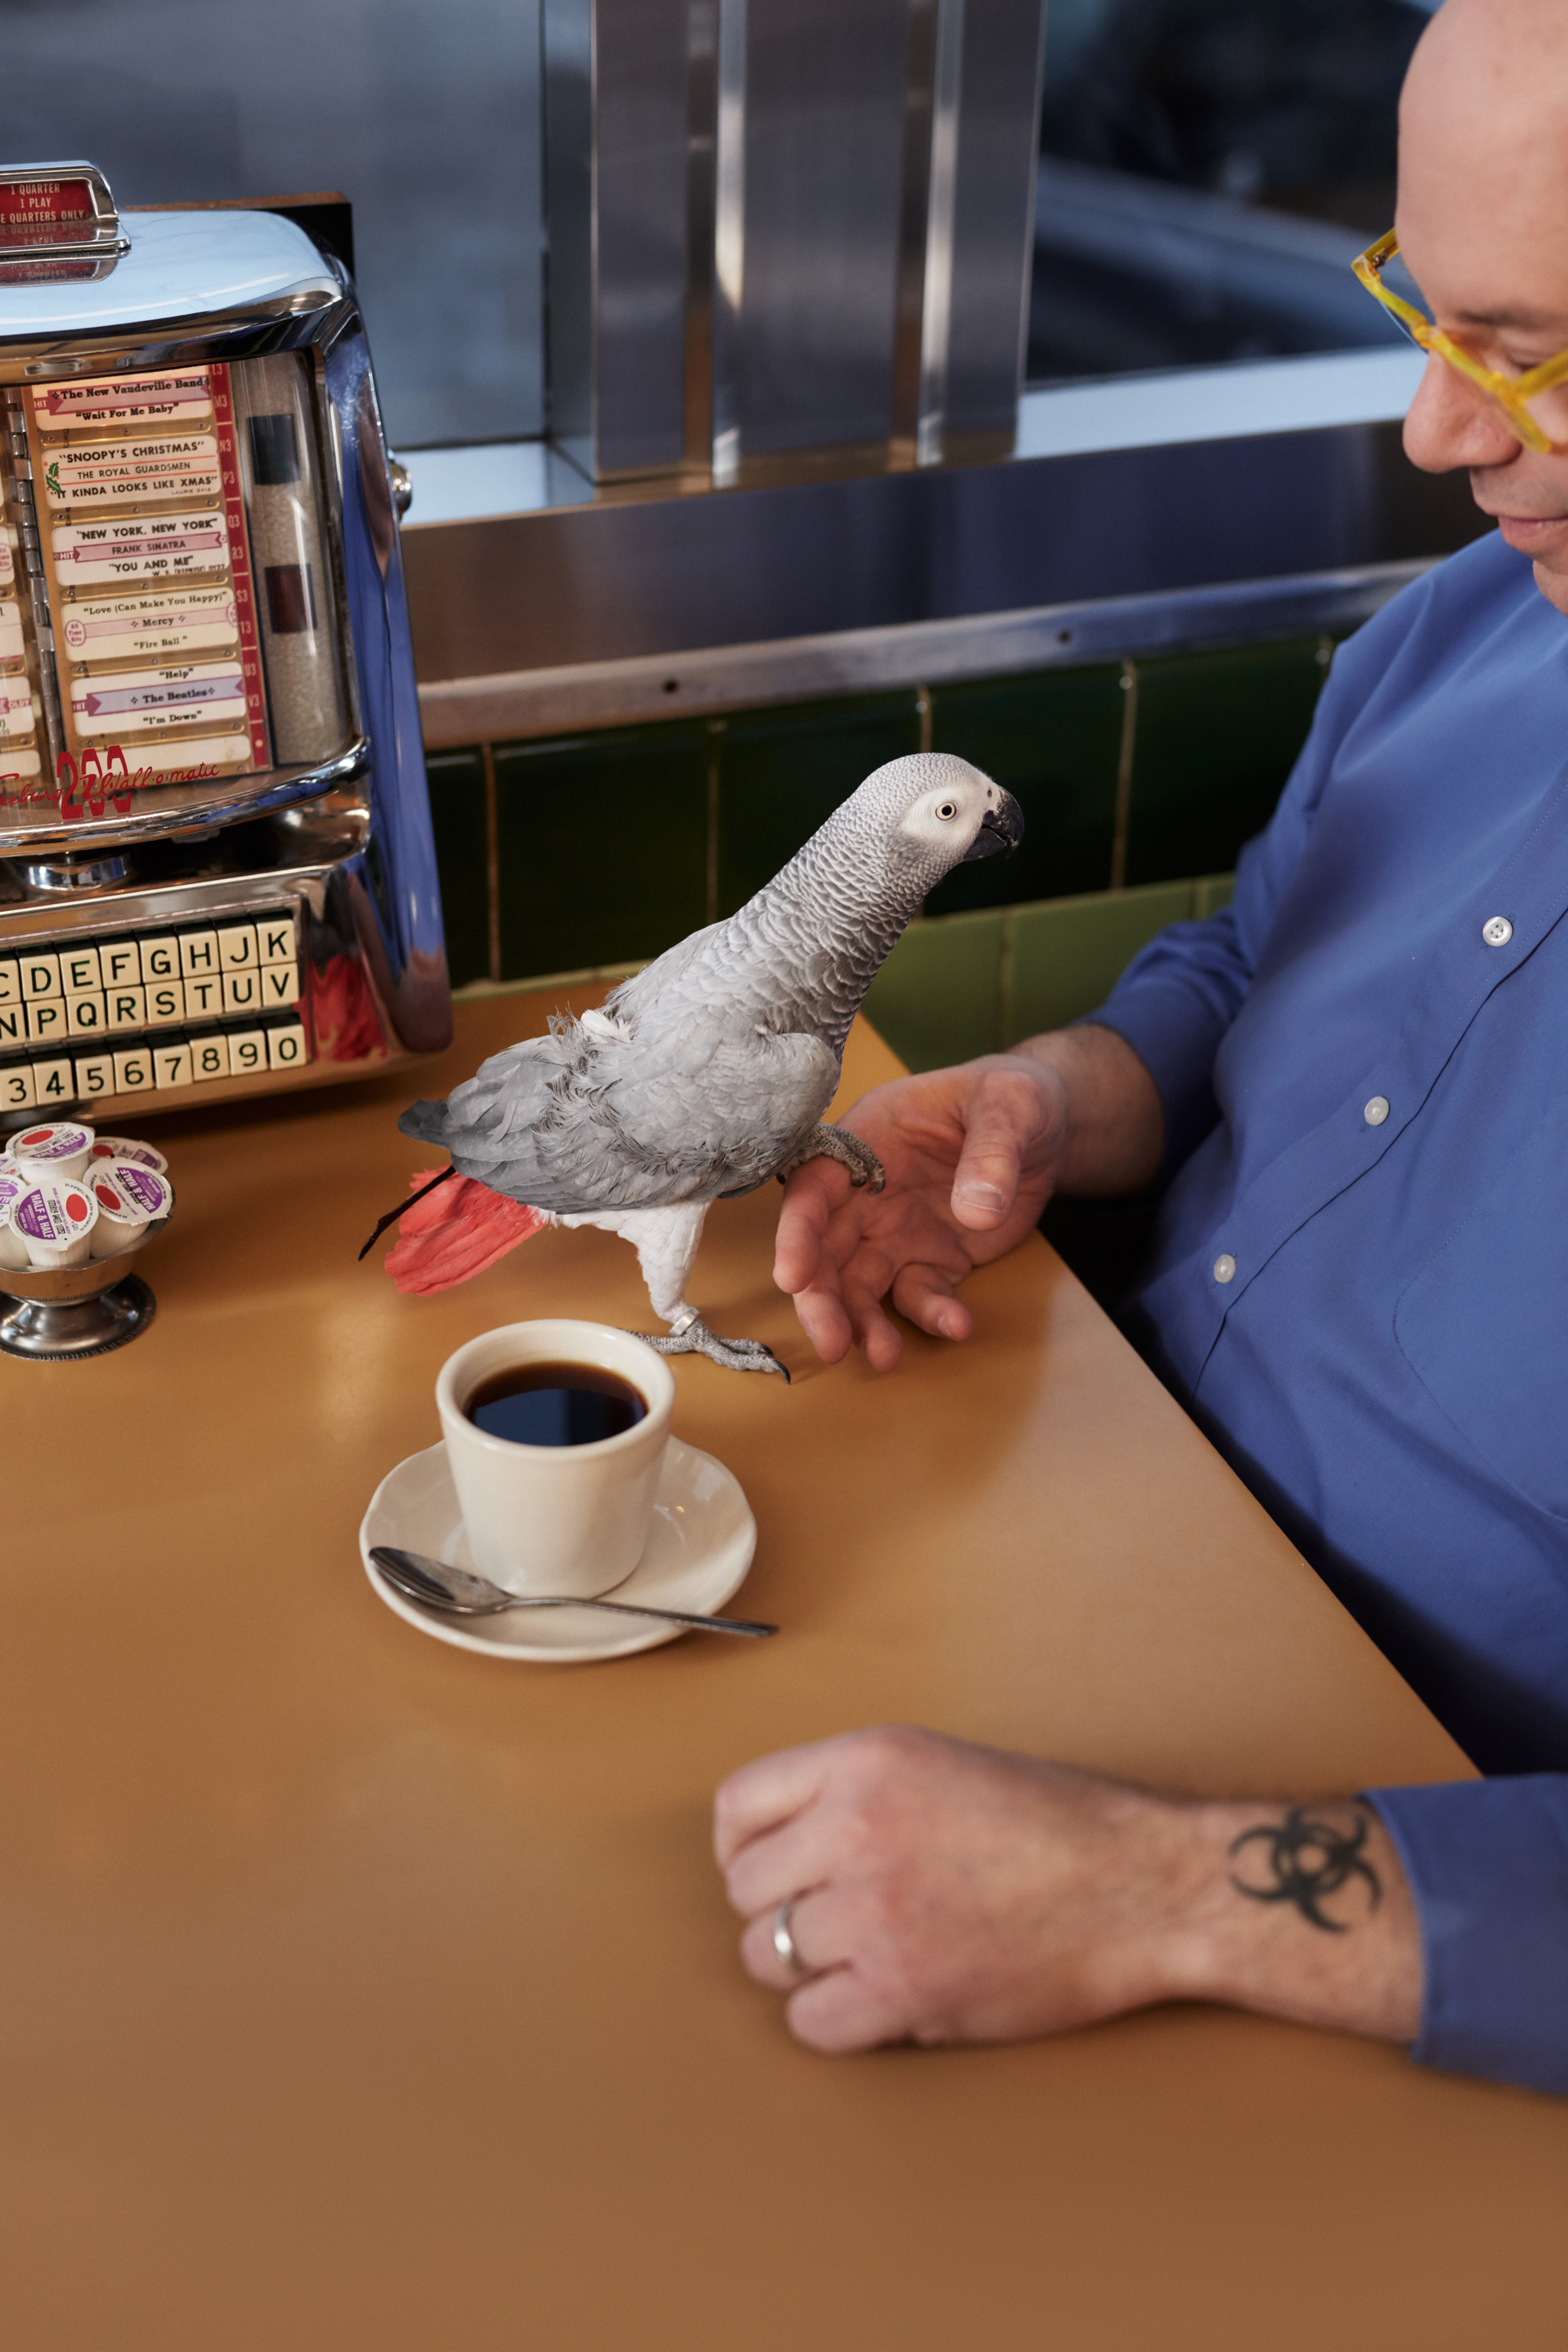 One of Siegel's parrots perches on his finger at the table of a local diner with a tabletop jukebox in the background.